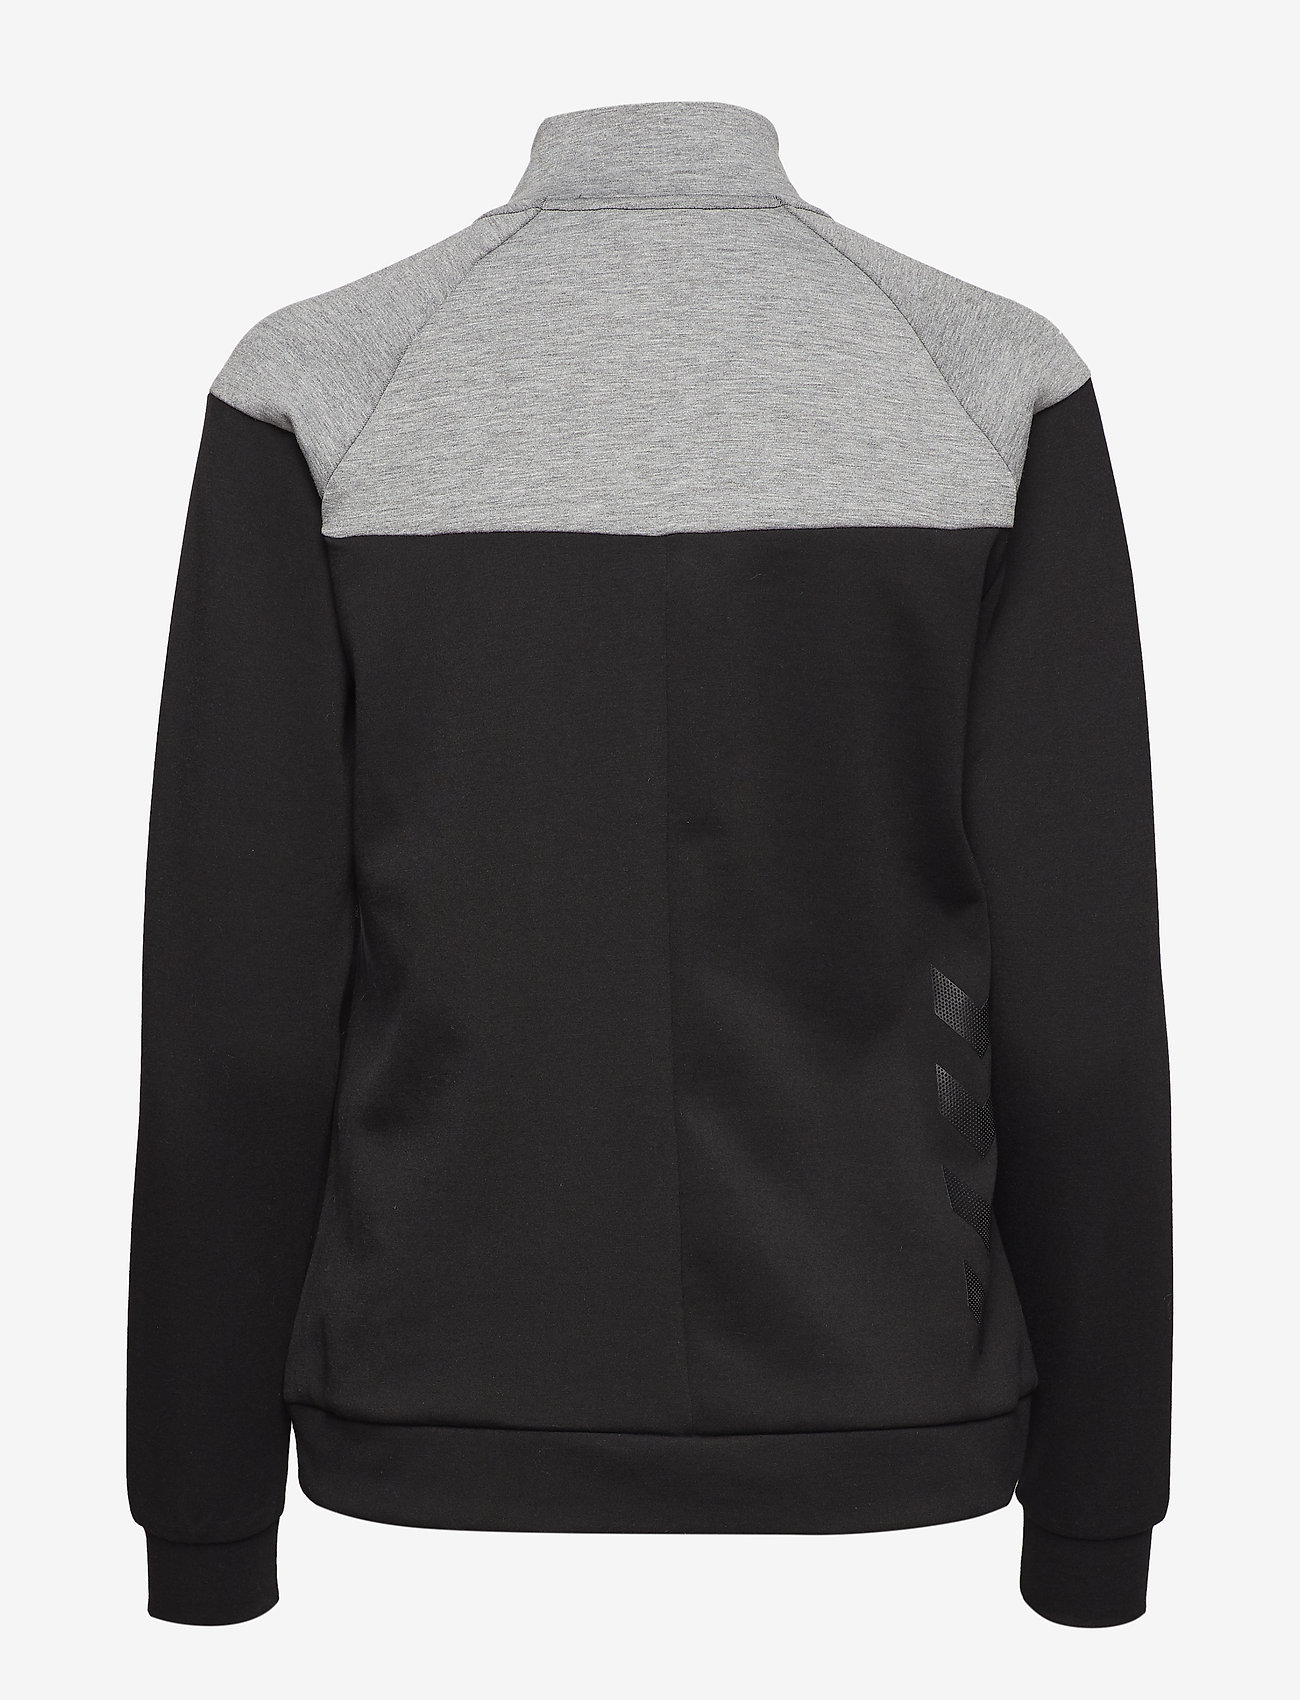 Hummel - CLASSIC BEE WO ZION ZIP JACKET - sweatshirts - black